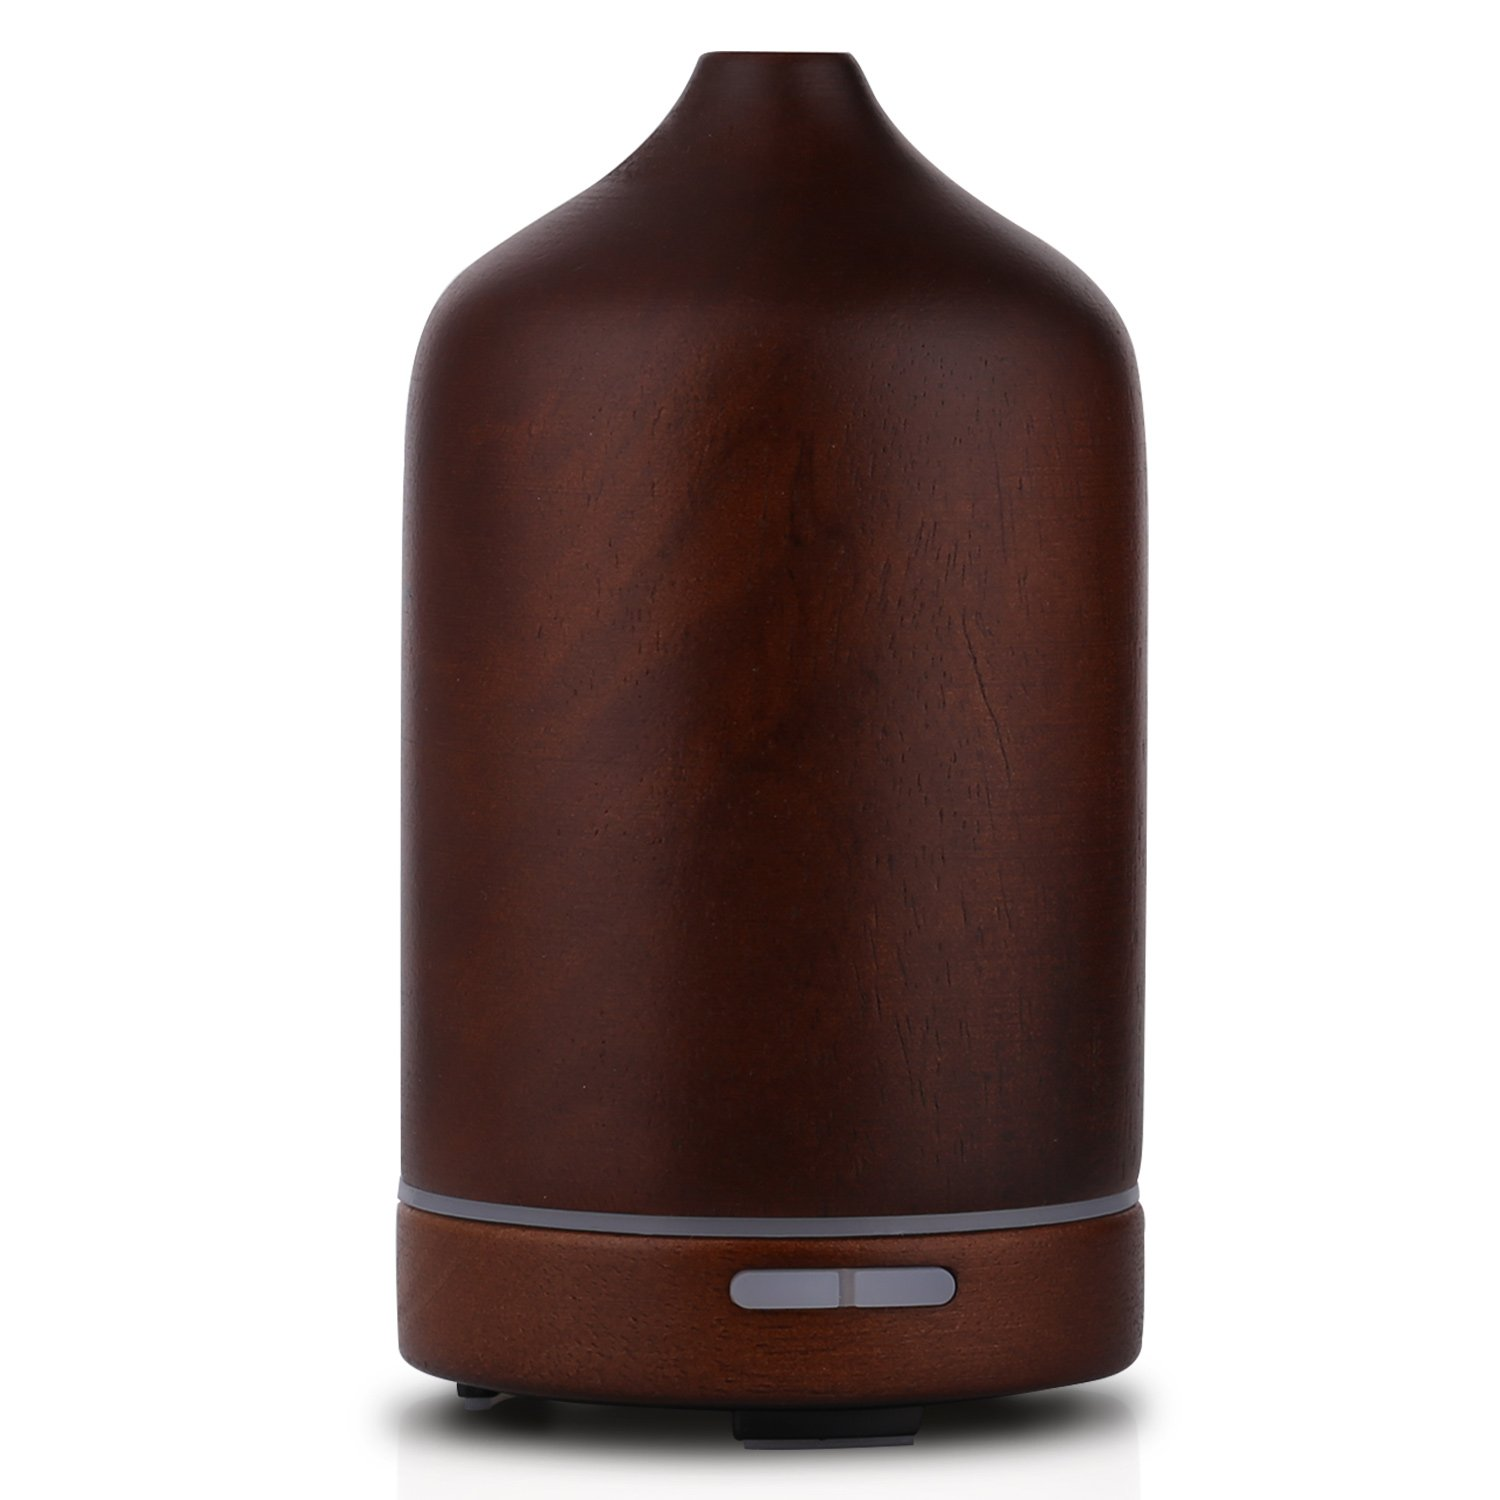 Wood Aromatherapy Essential Oil Diffuser BYMIE Whisper Quiet Cool Mist Humidifier Bedroom Young living (Brown Black) 1503